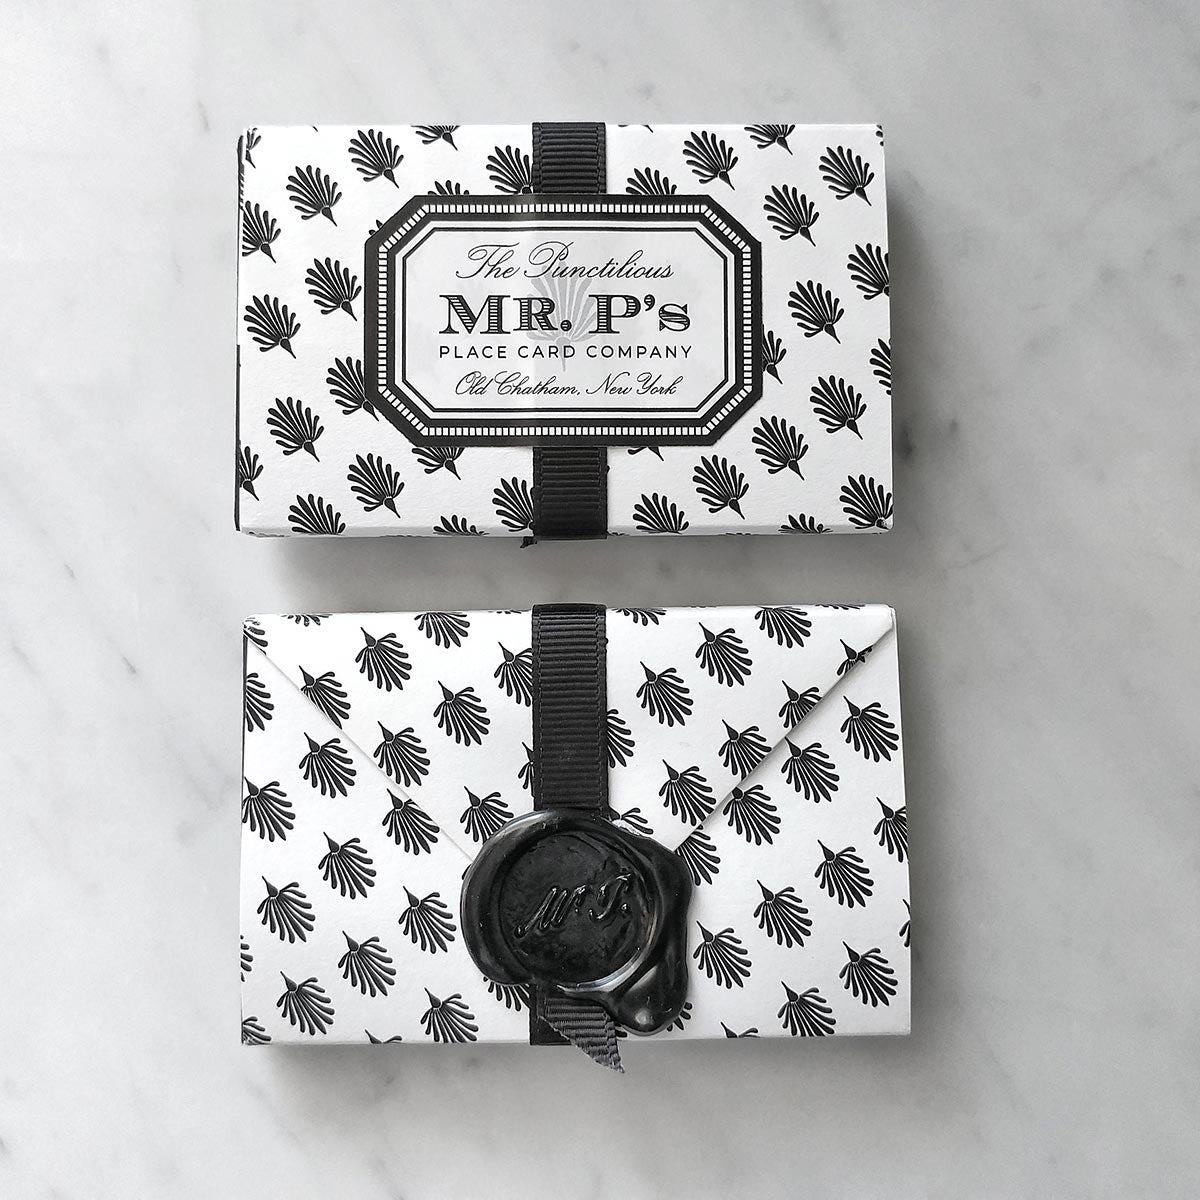 A front and back view of a pack of Mr. P's Place Cards